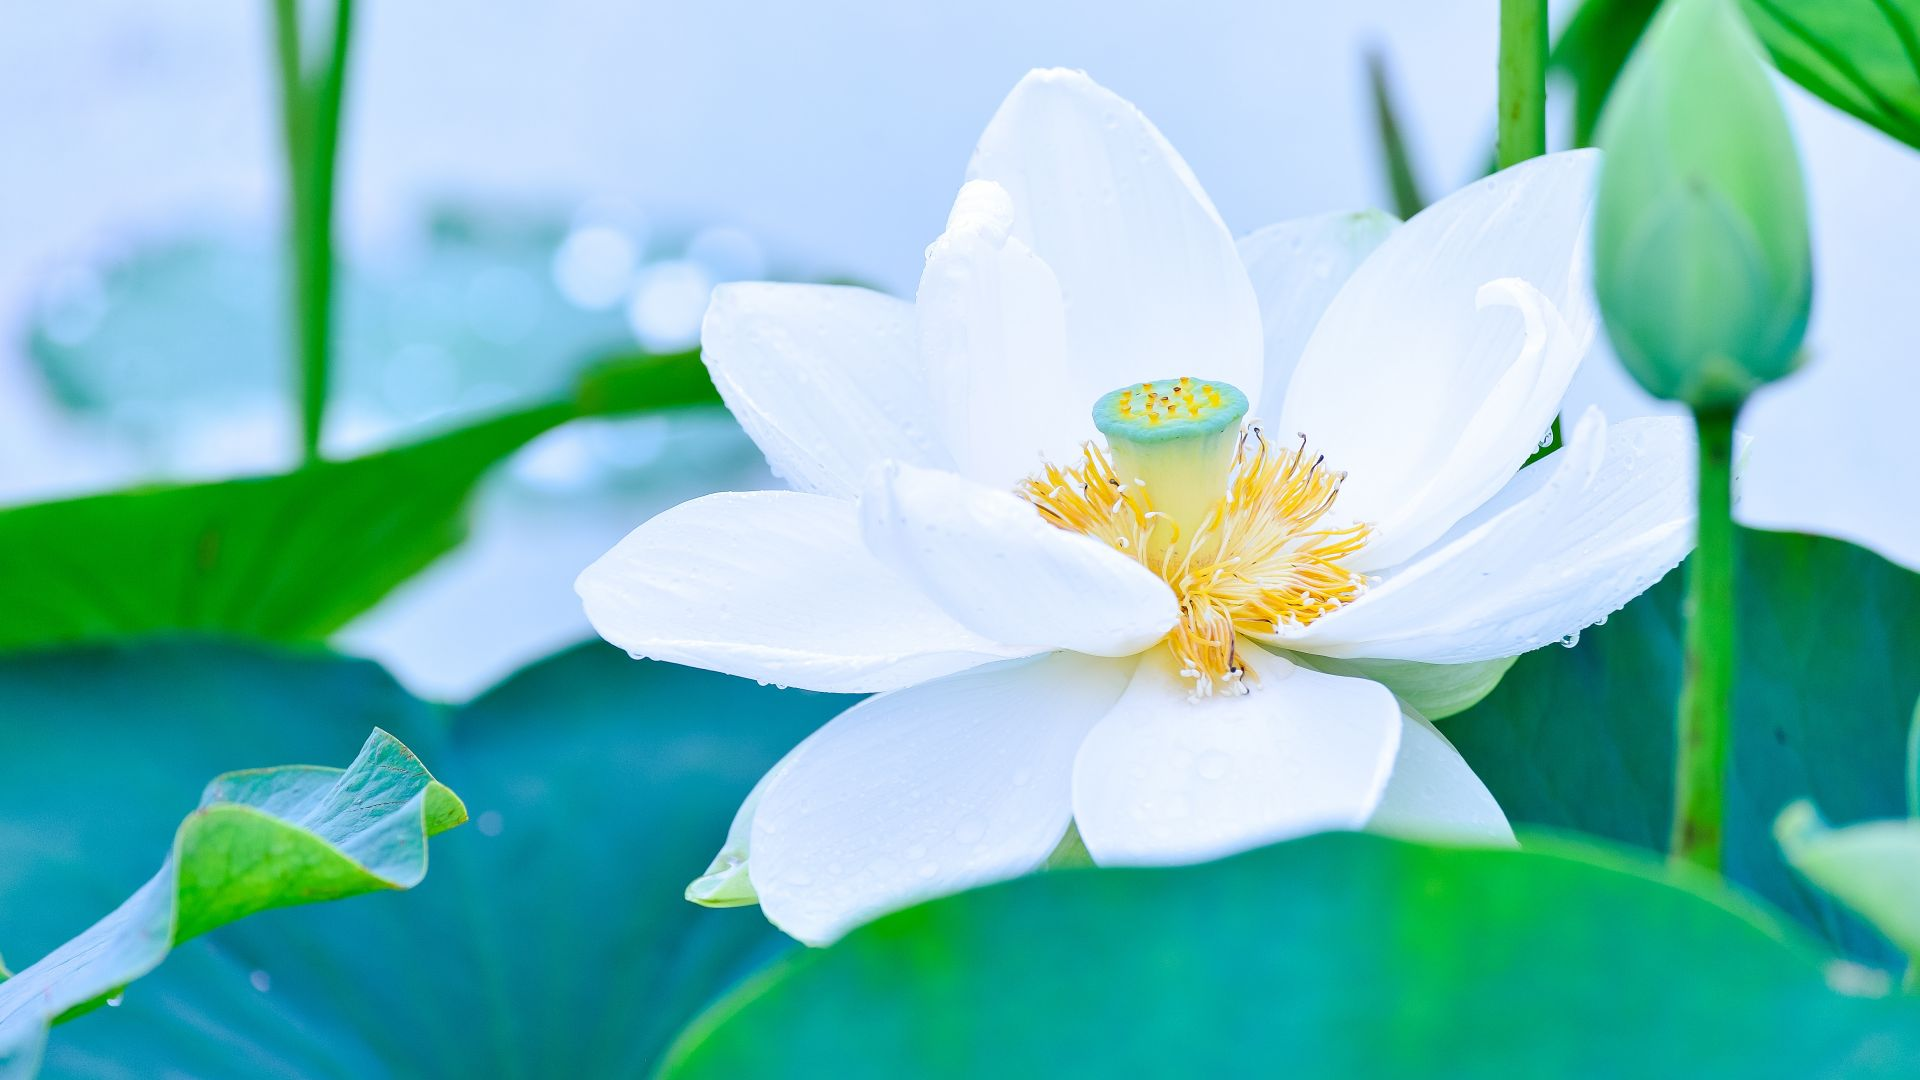 10 Rare Flowers From Around the World Which Are Absolutely Beautiful